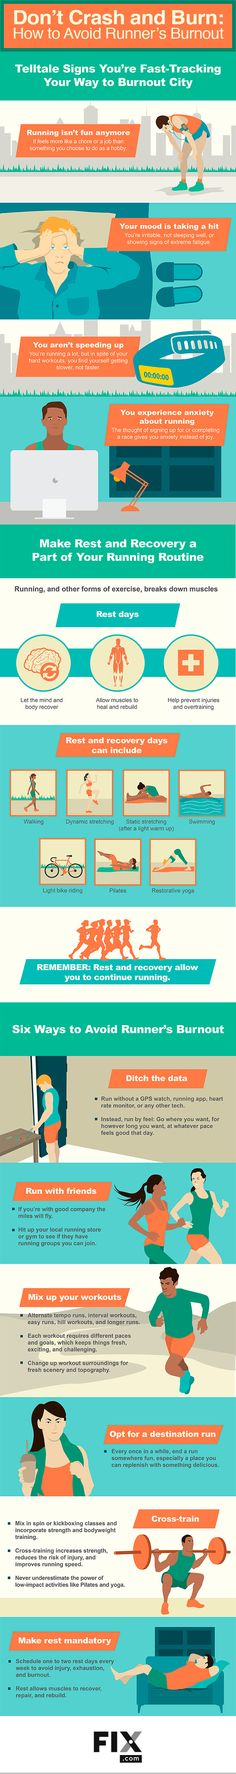 Runner's burnout can happen to anyone and it can be a frustrating experience. Our guide helps you understand what runner's burnout is, how to recognize the signs you are heading for it, and what to do to get back on track. From running with friends to ditching the data, we outline six ways to get out of your running slump and lacing up your shoes again.